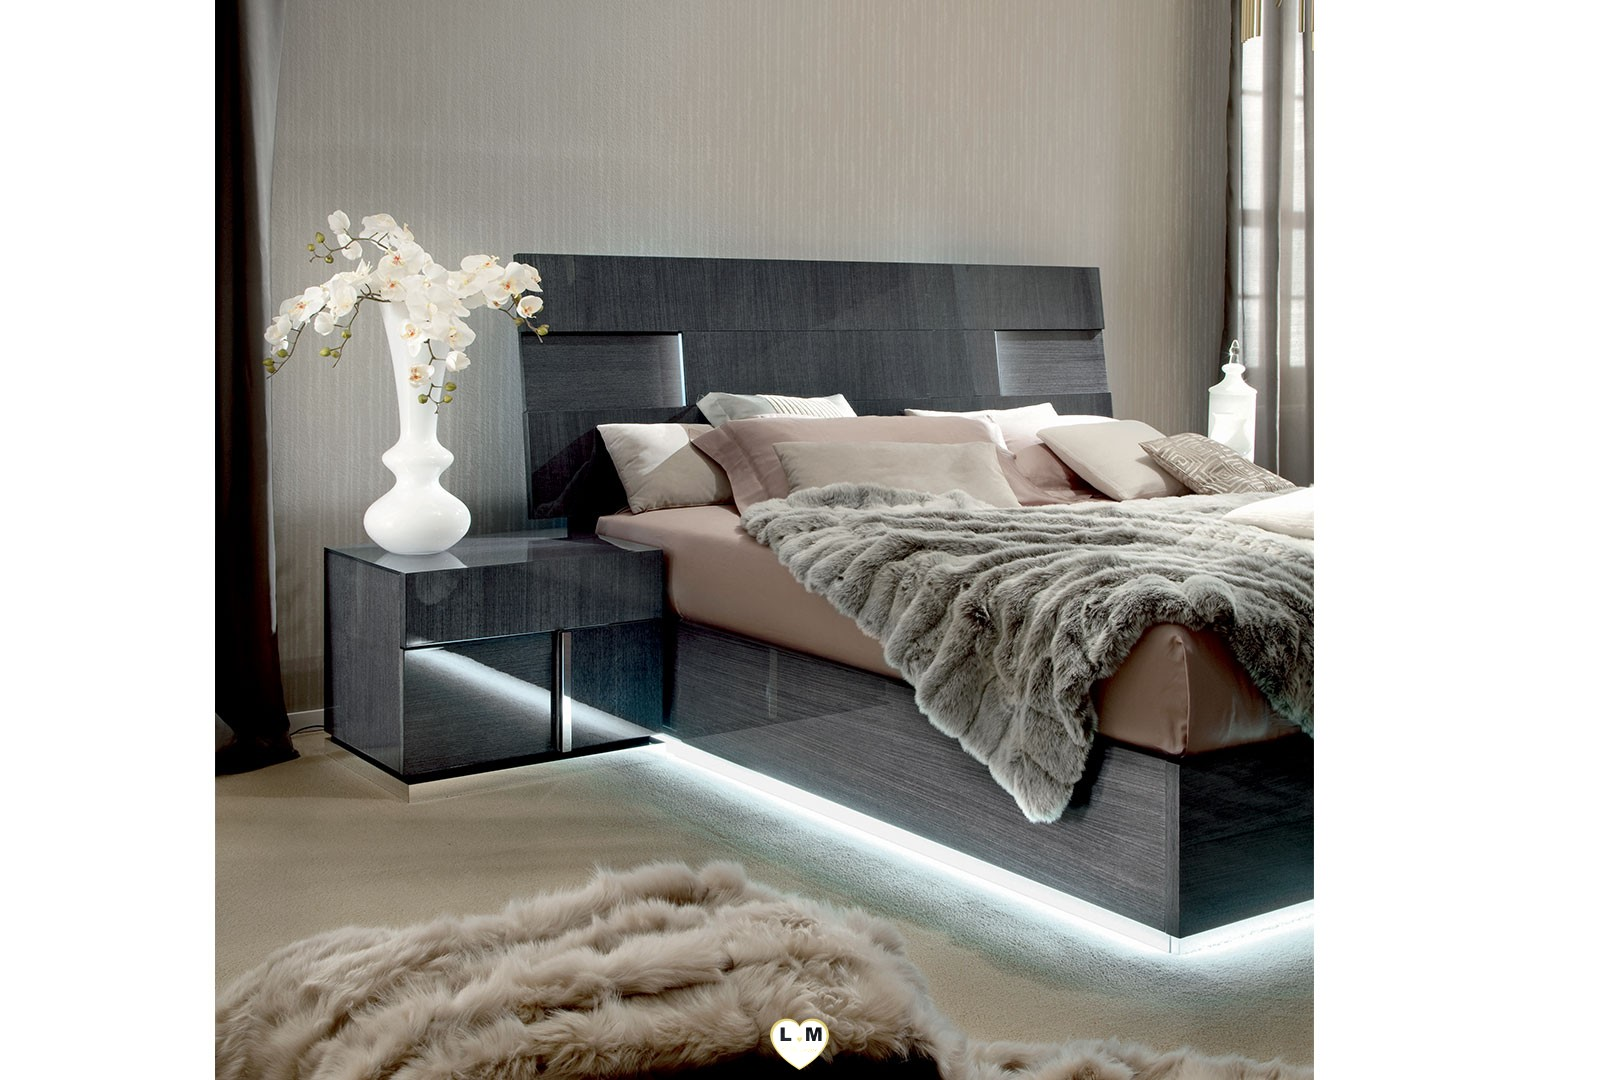 Hollywood laque koto gris ensemble chambre a coucher - Ensemble lit x ...